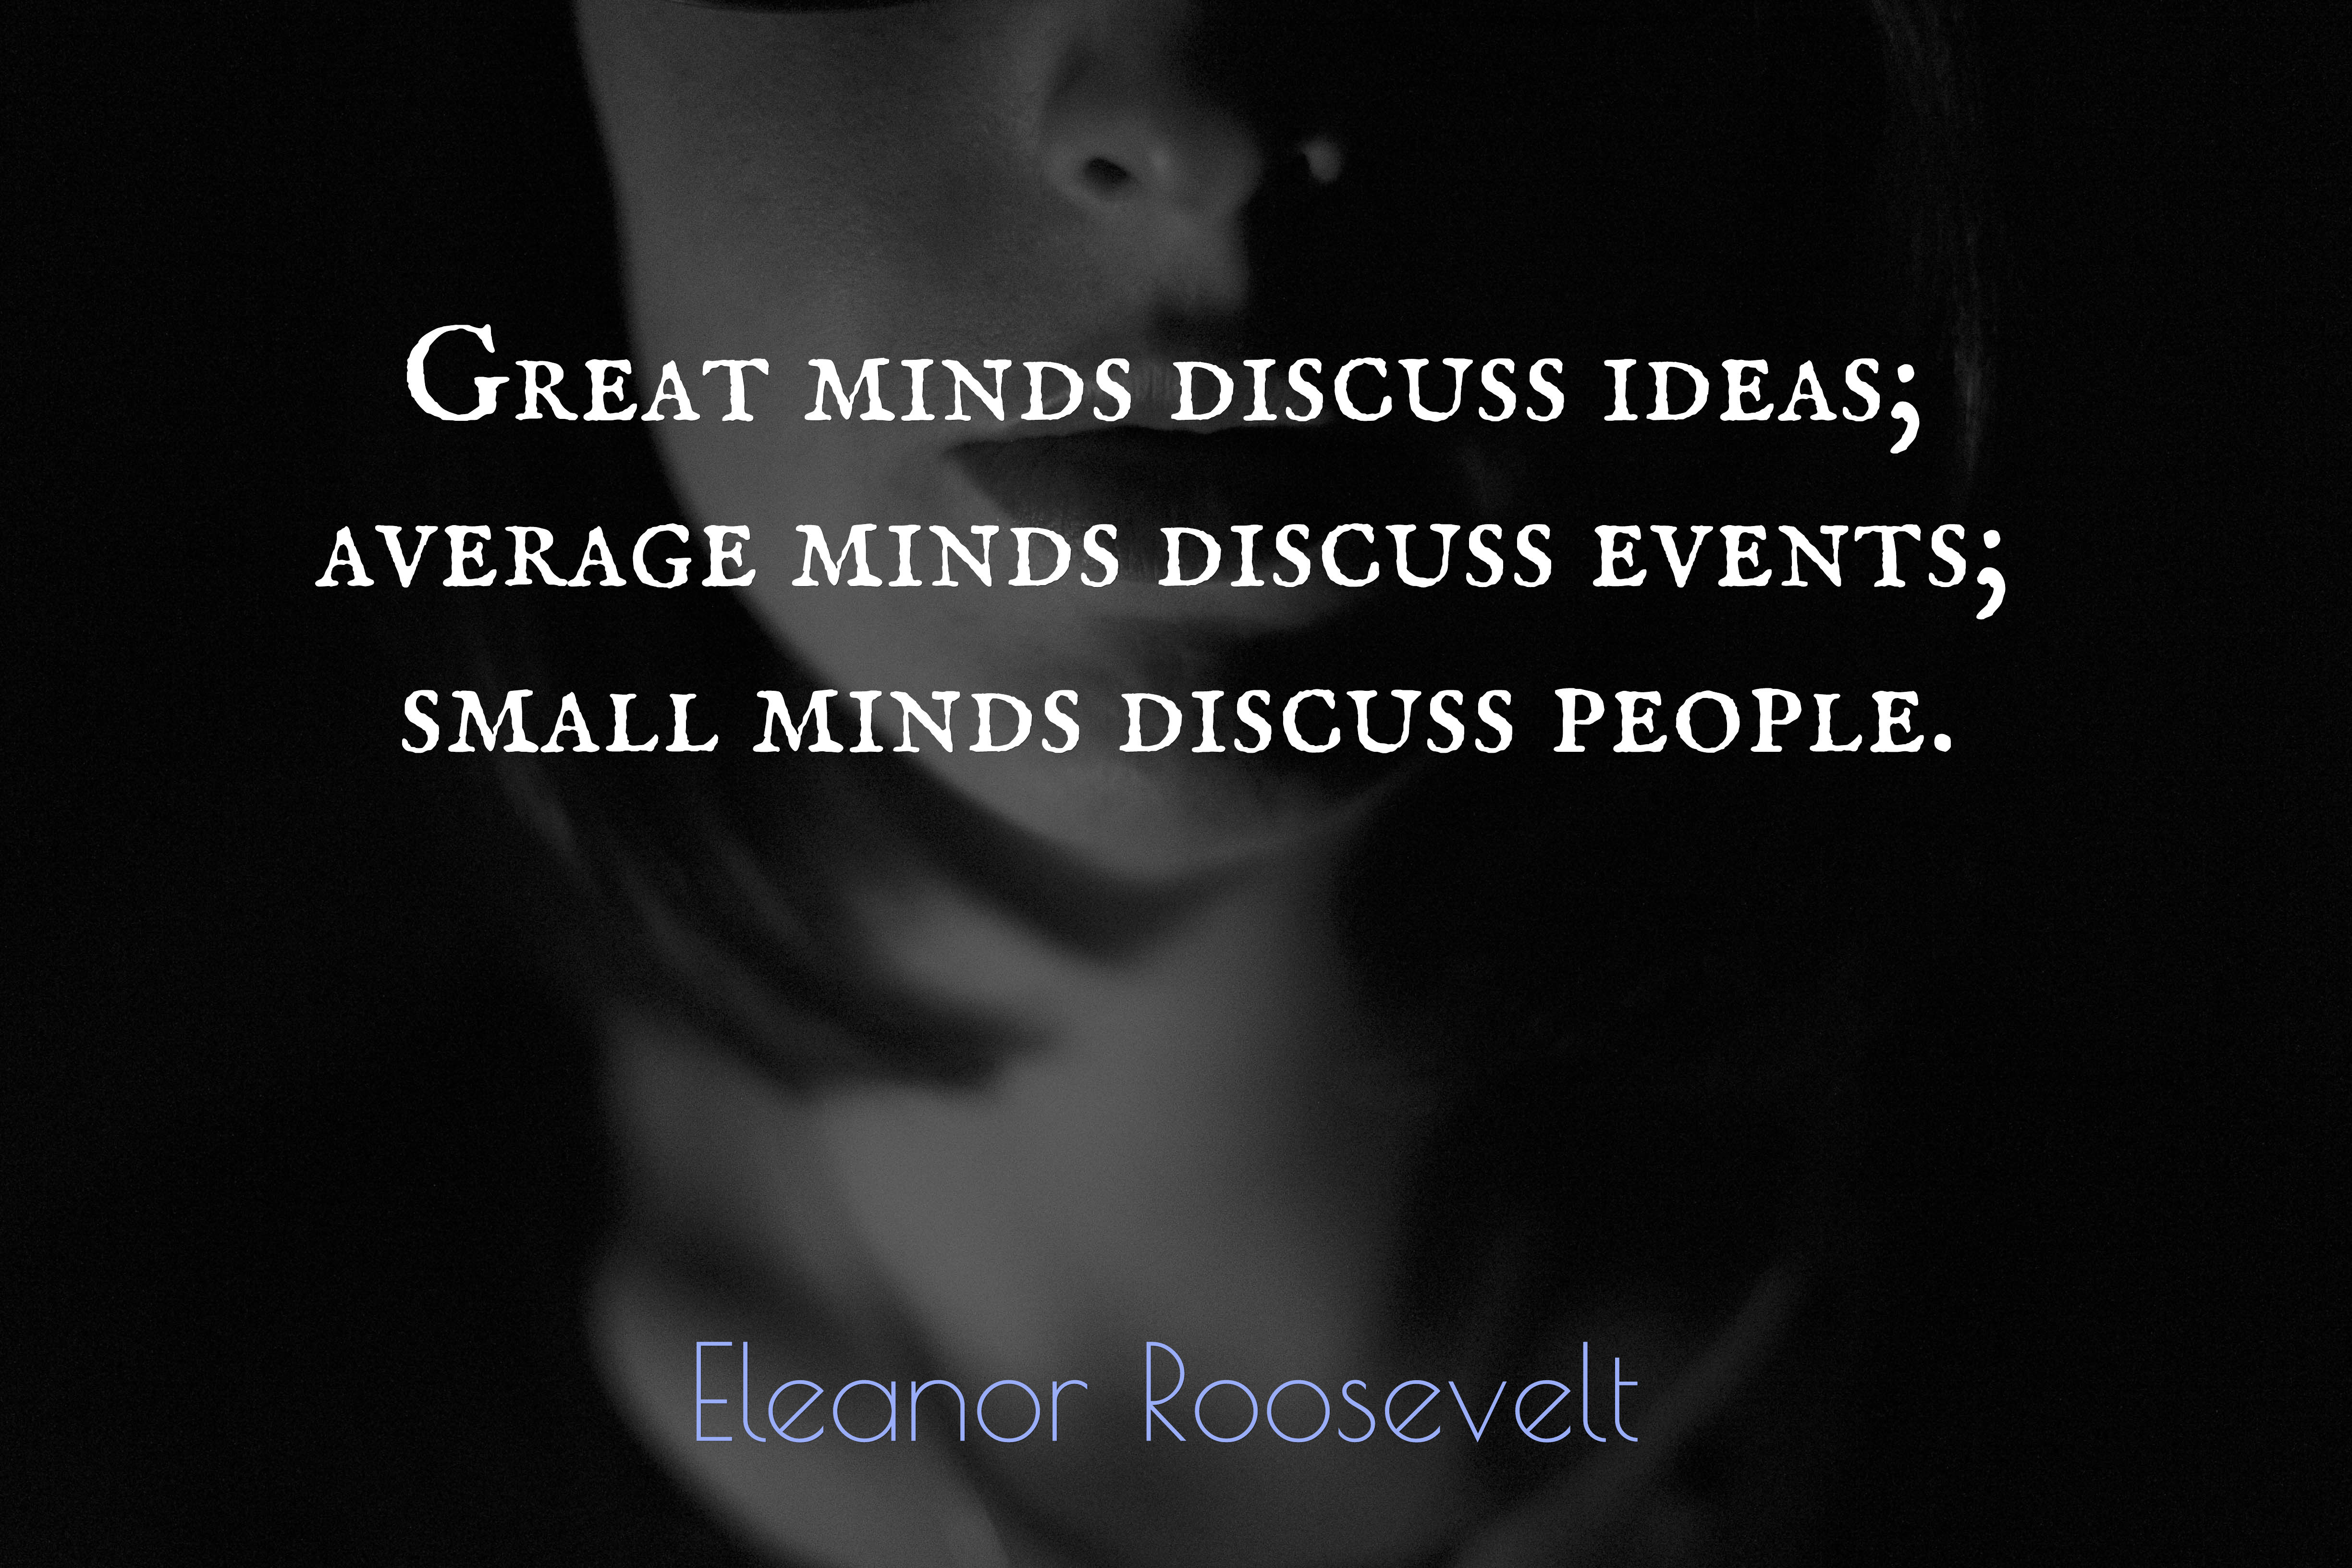 Great Small Quotes Great Minds Discuss Ideas Average Mindspicture Quotes 1165